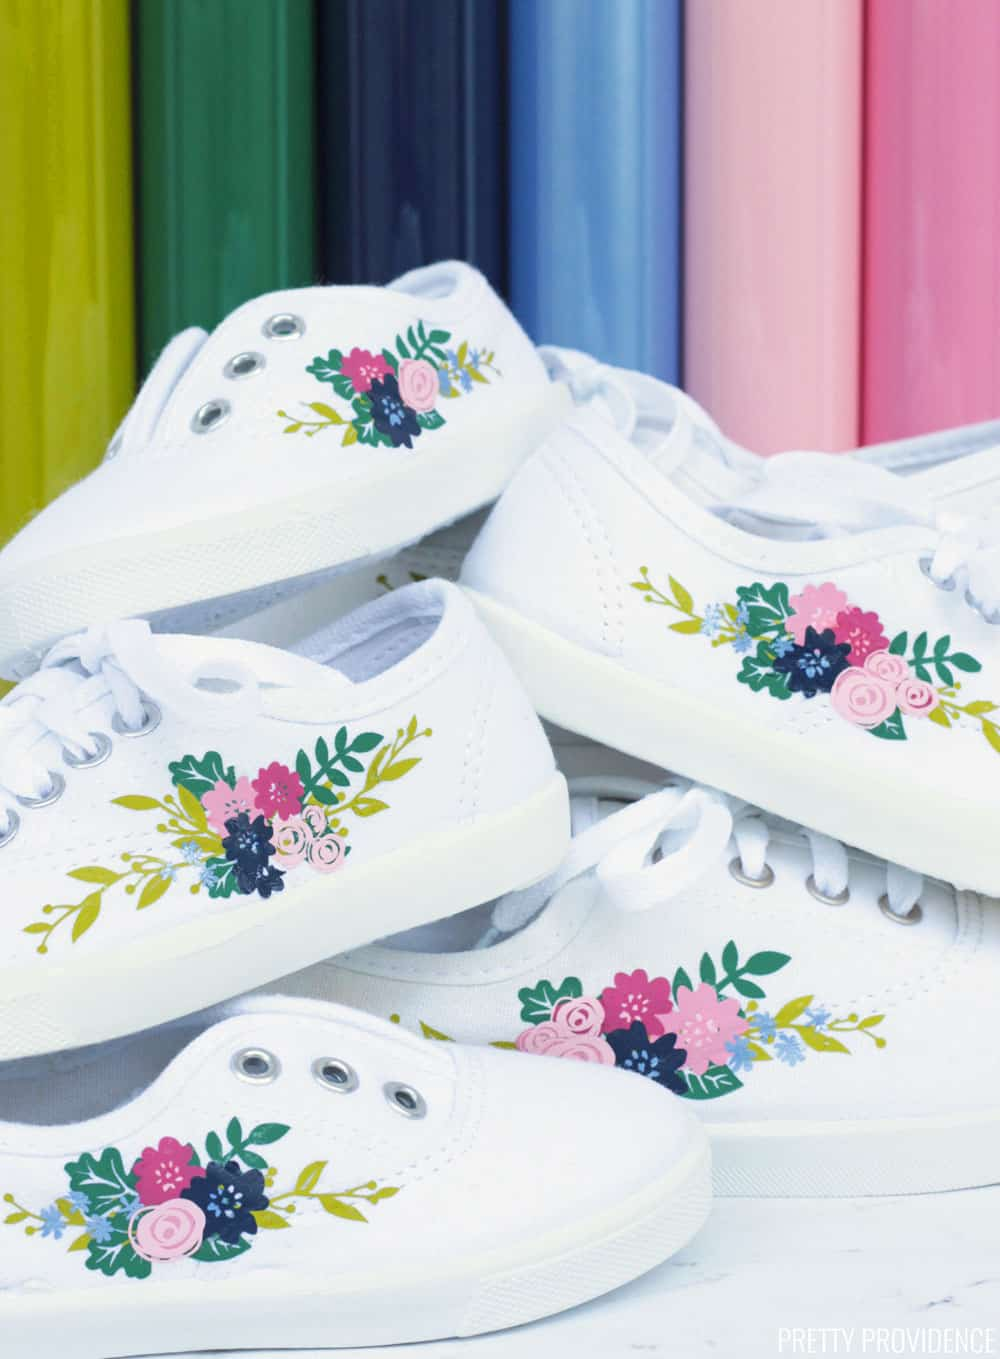 Six white keds style shoes with floral iron-on designs on them, iron-on rolls behind them in the background.